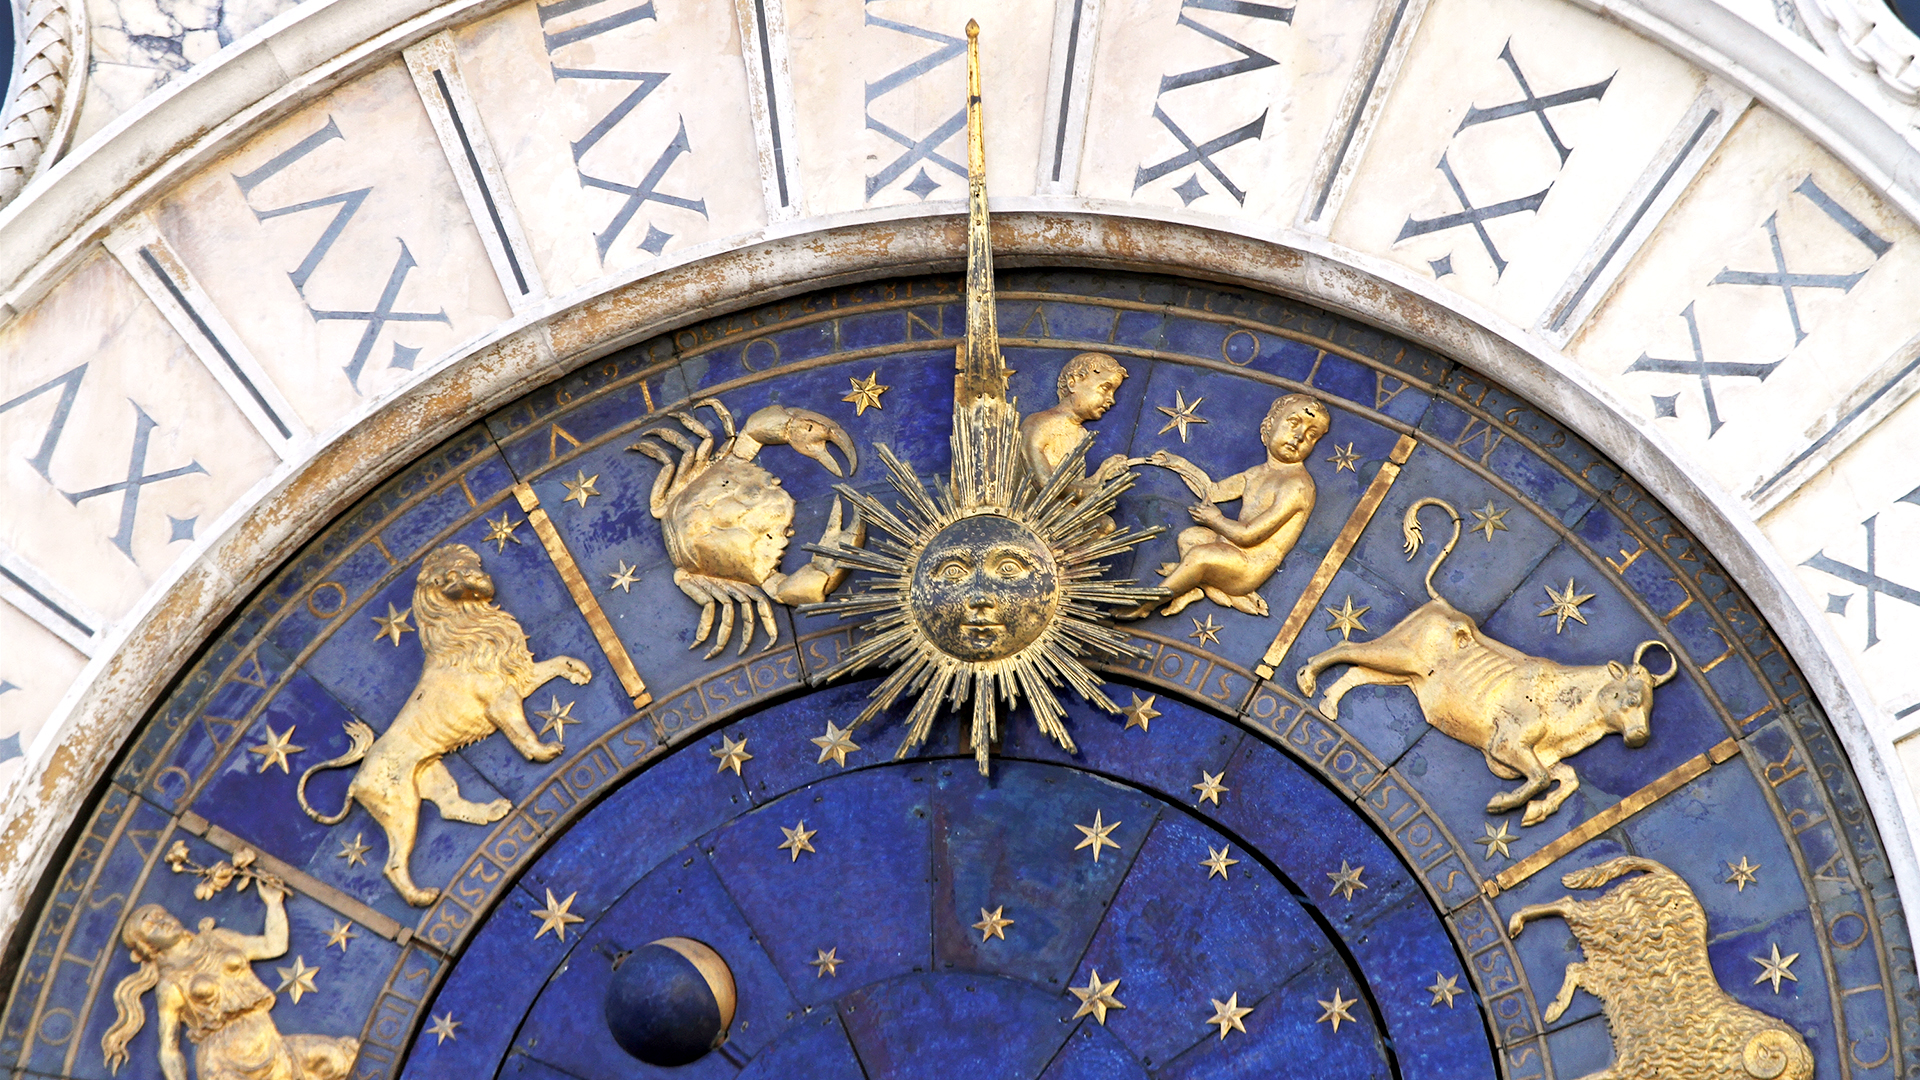 The new zodiac sign and astrology dates, according to NASA